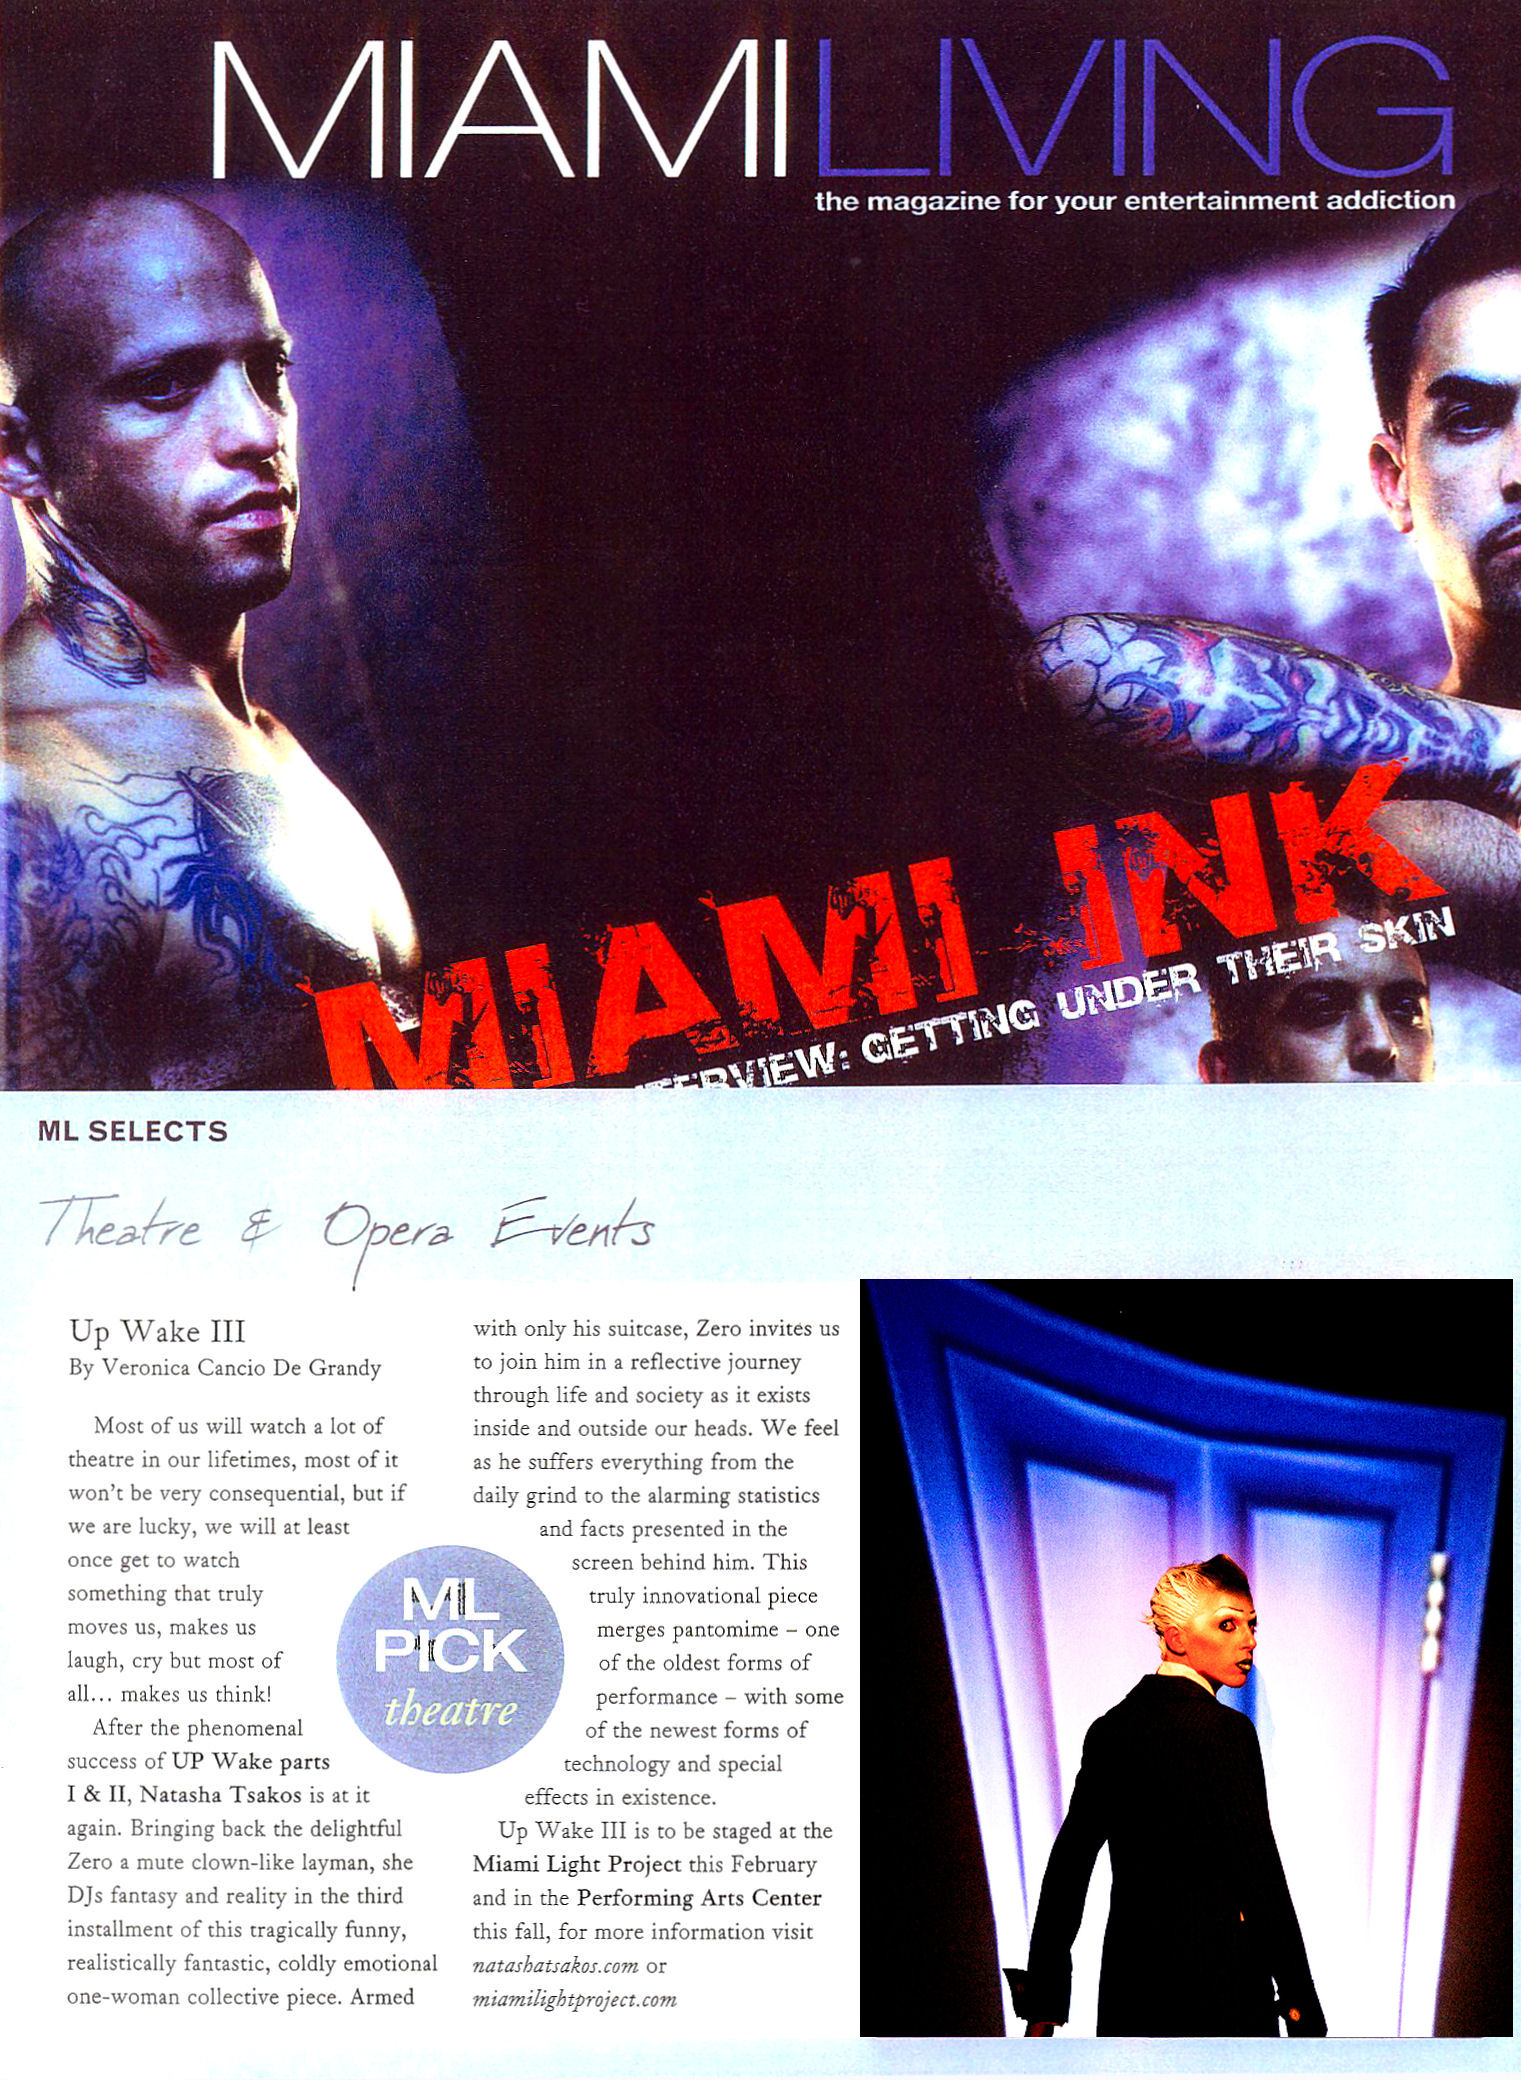 MIAMI LIVING MAGAZINE